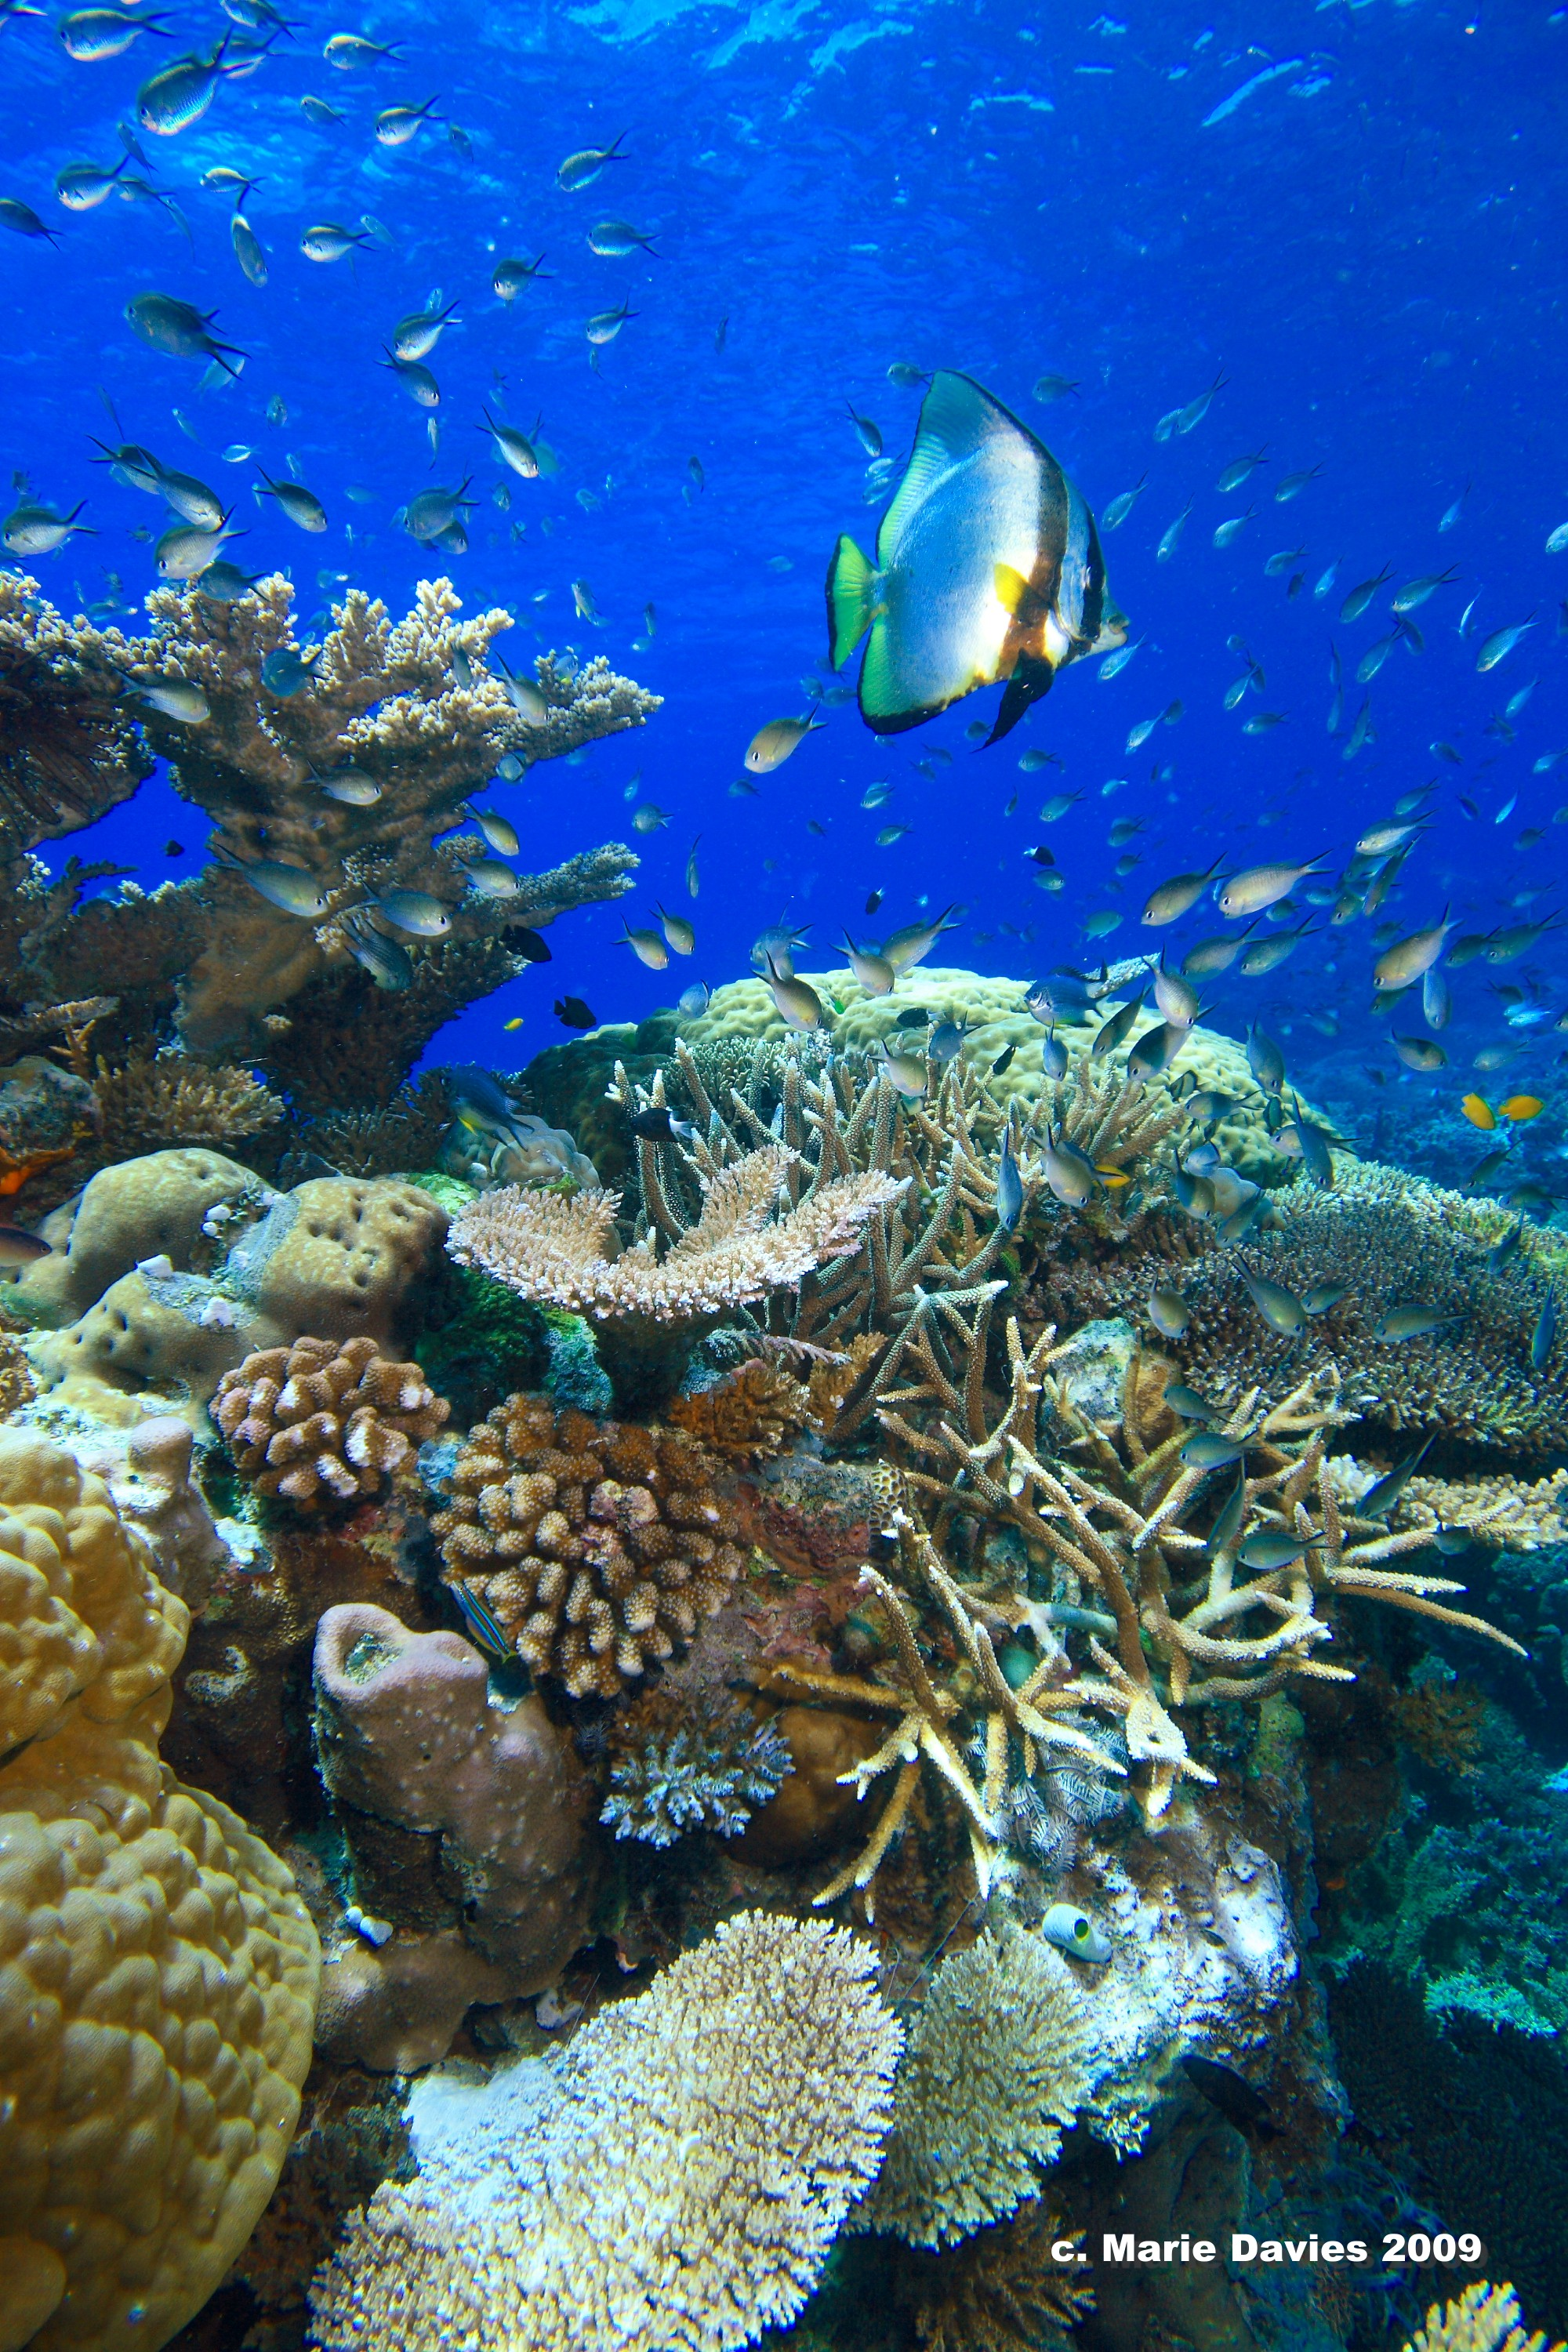 Marine life on the Great Barrier Reef.